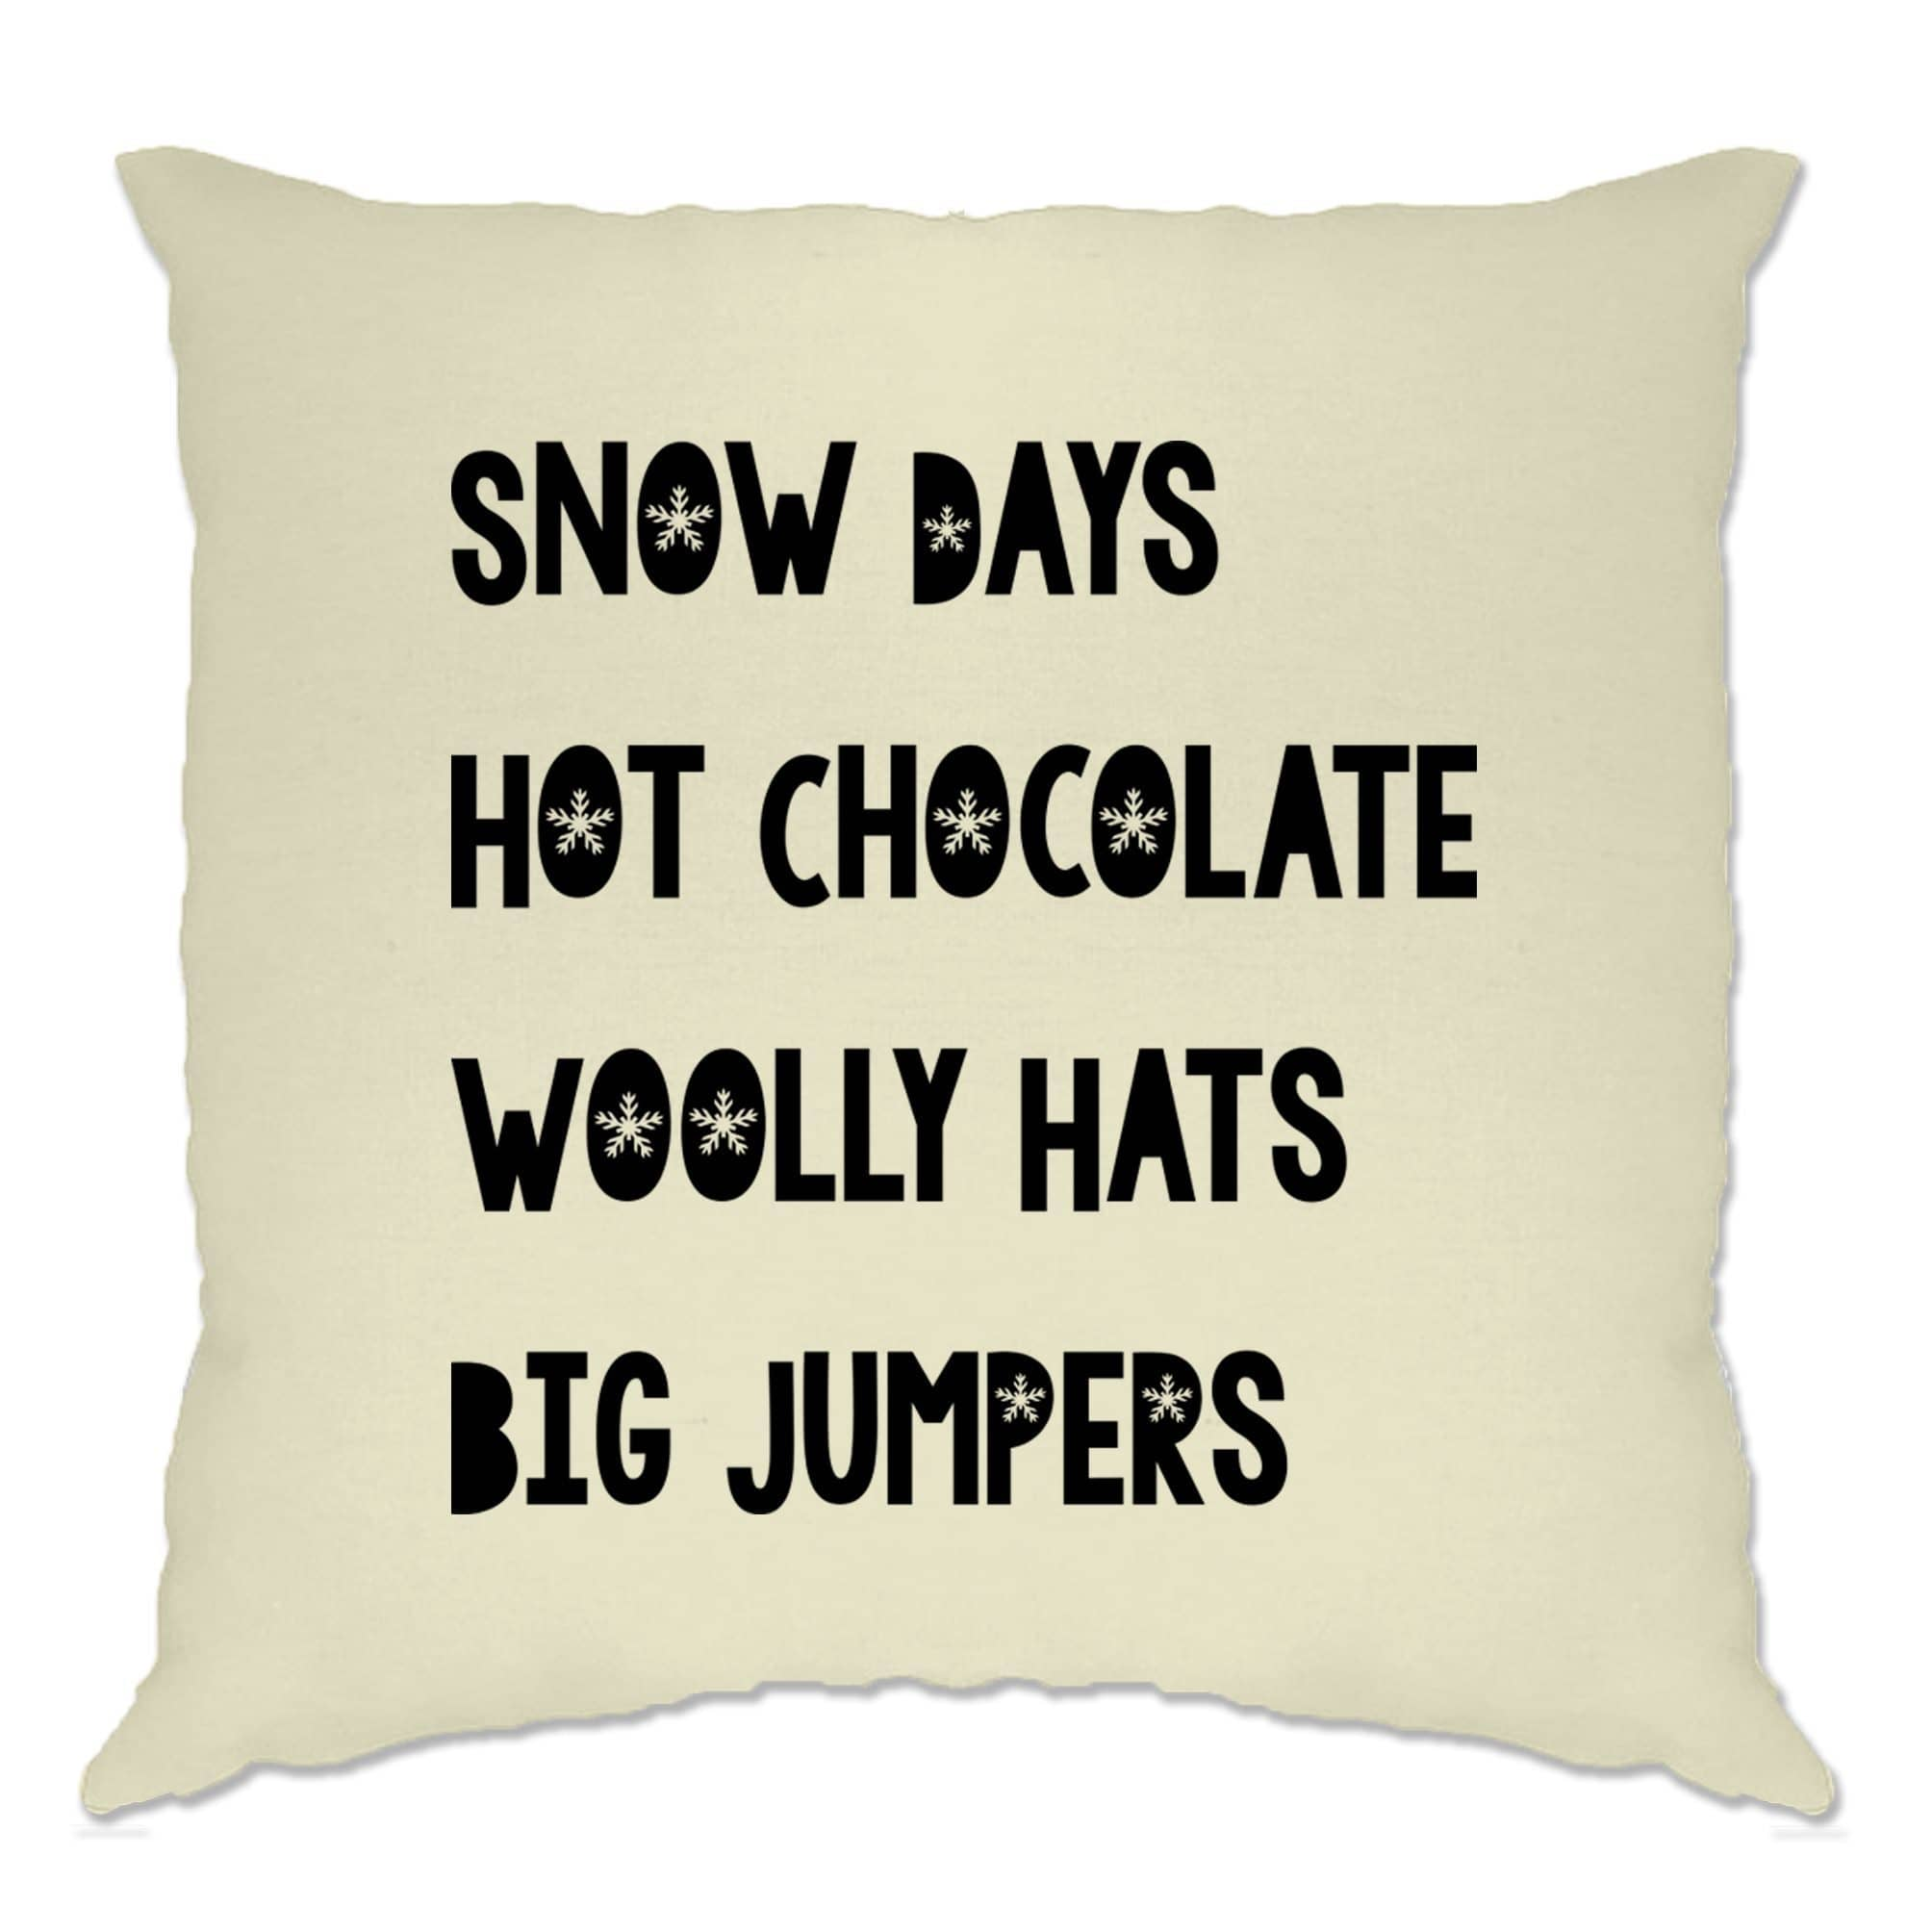 Christmas Cushion Cover Snow Days & Hot Chocolate Xmas Perks